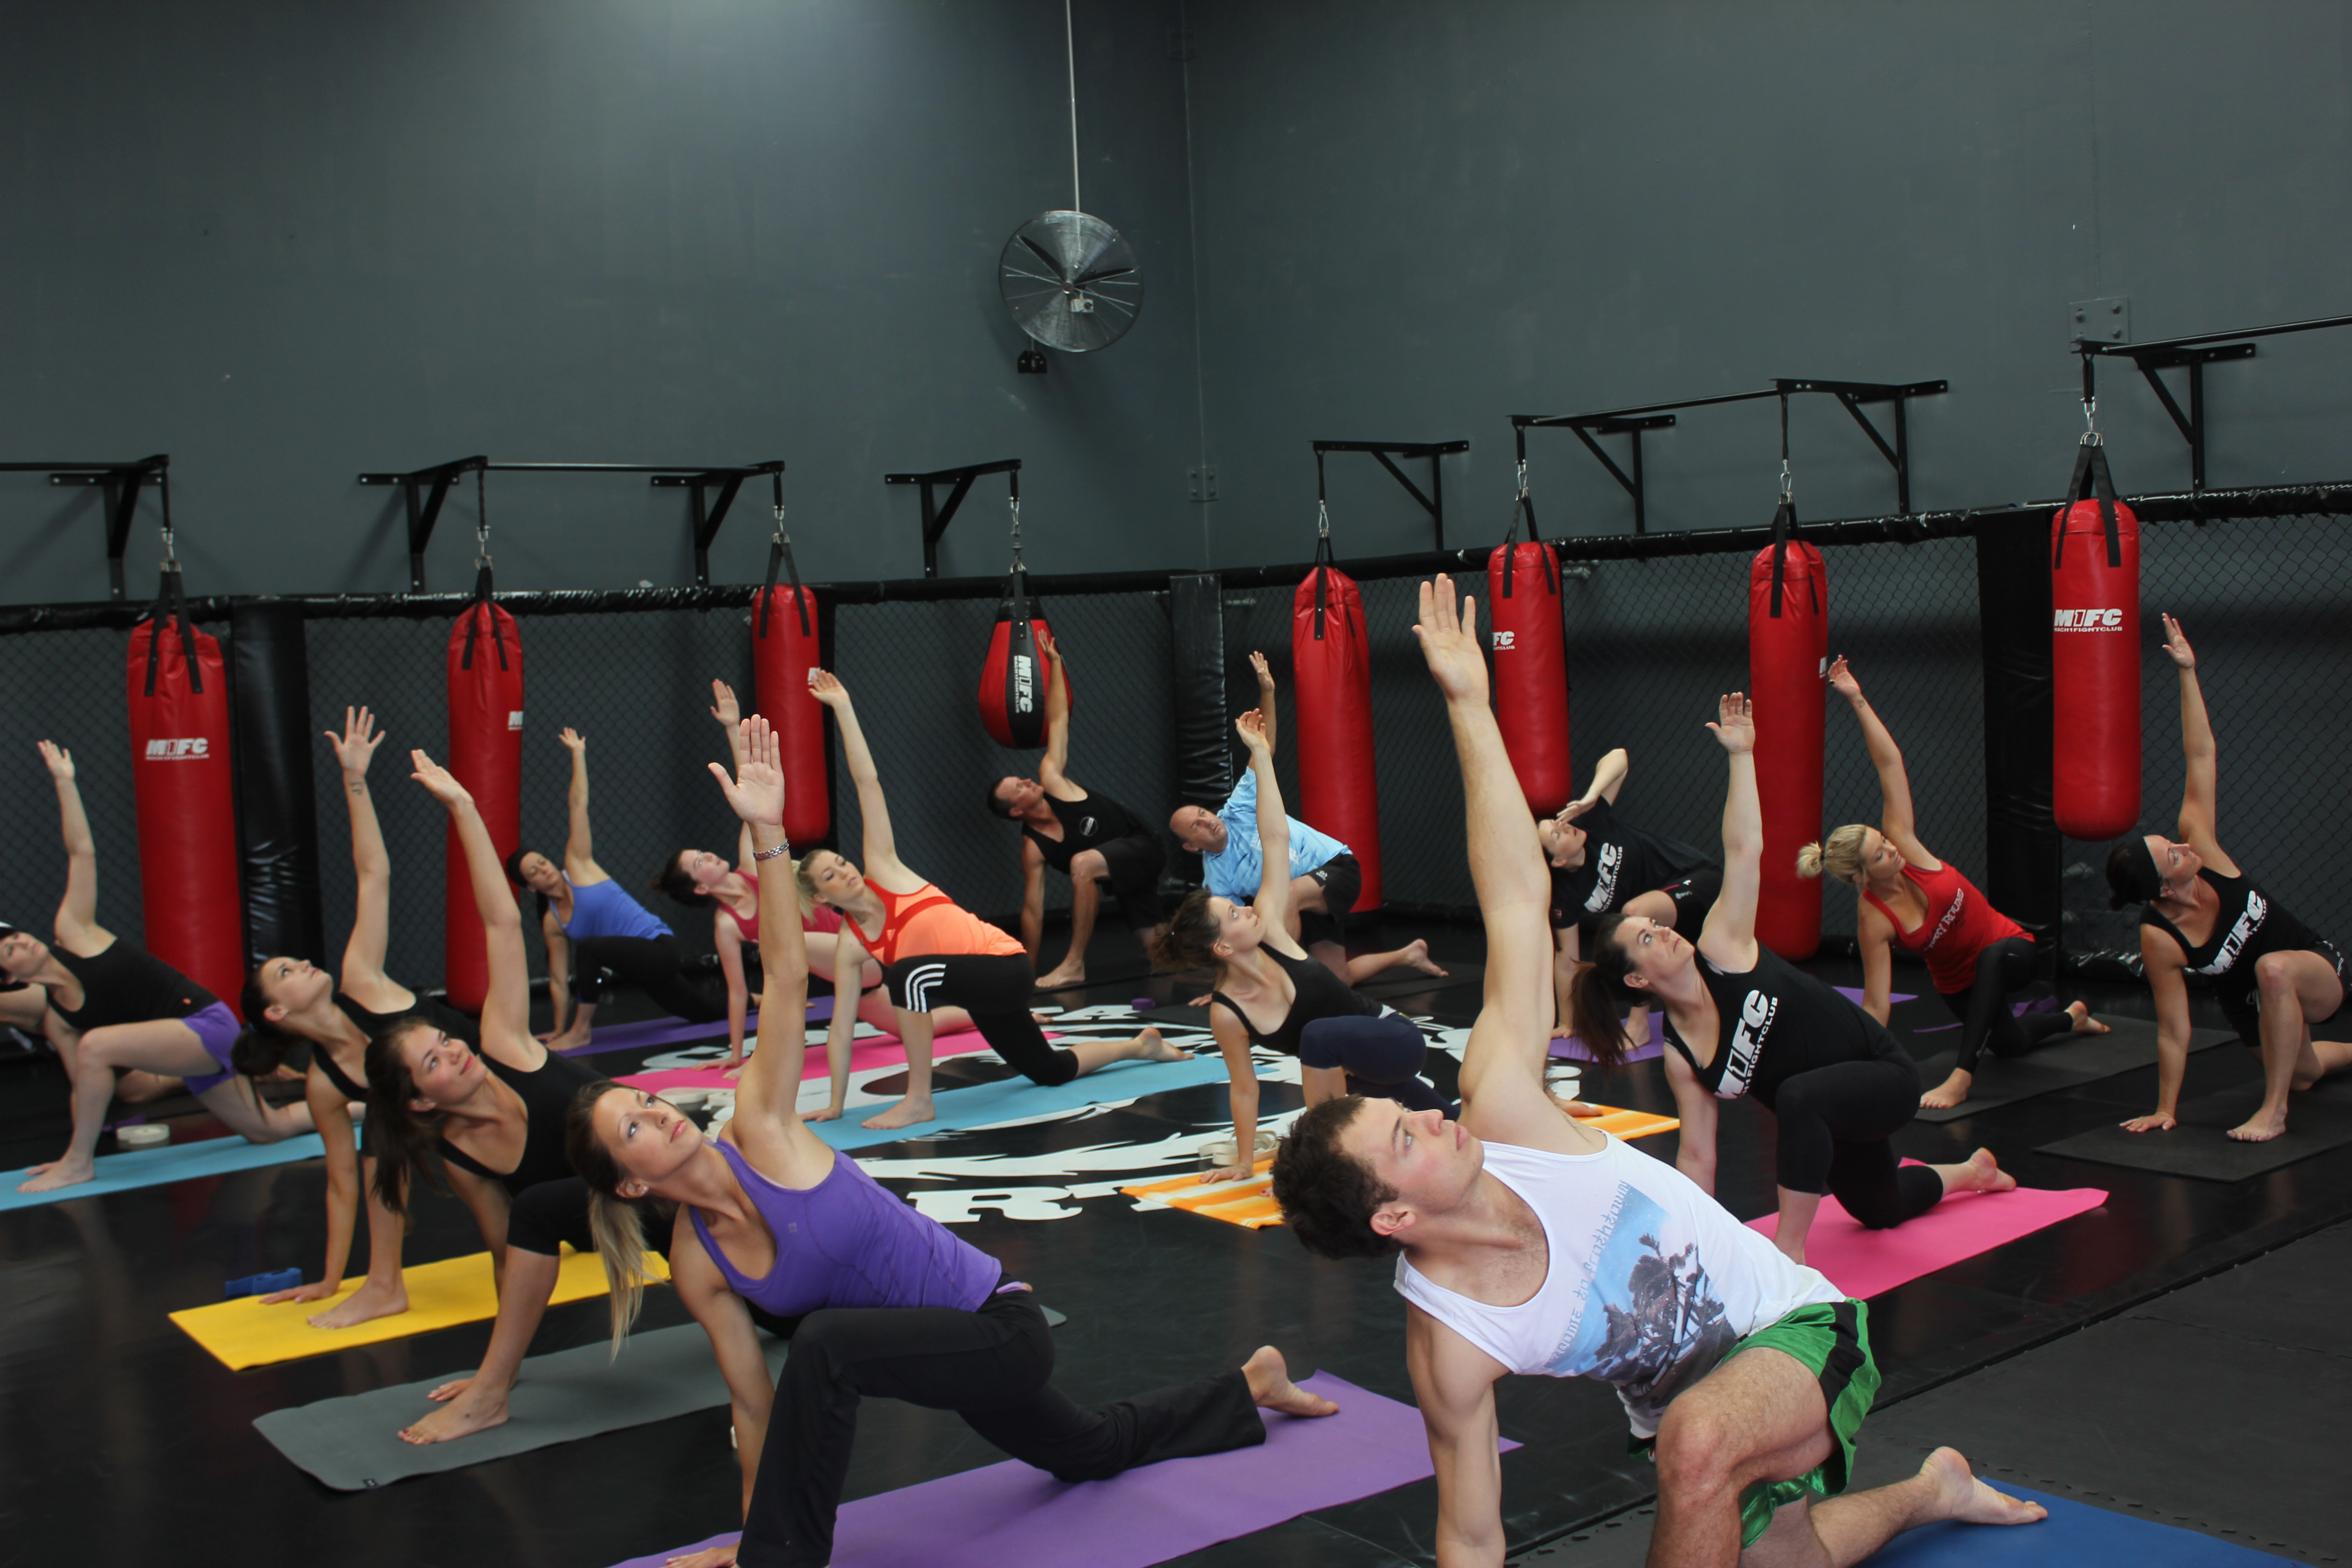 Yoga class in Joondalup at M1FC